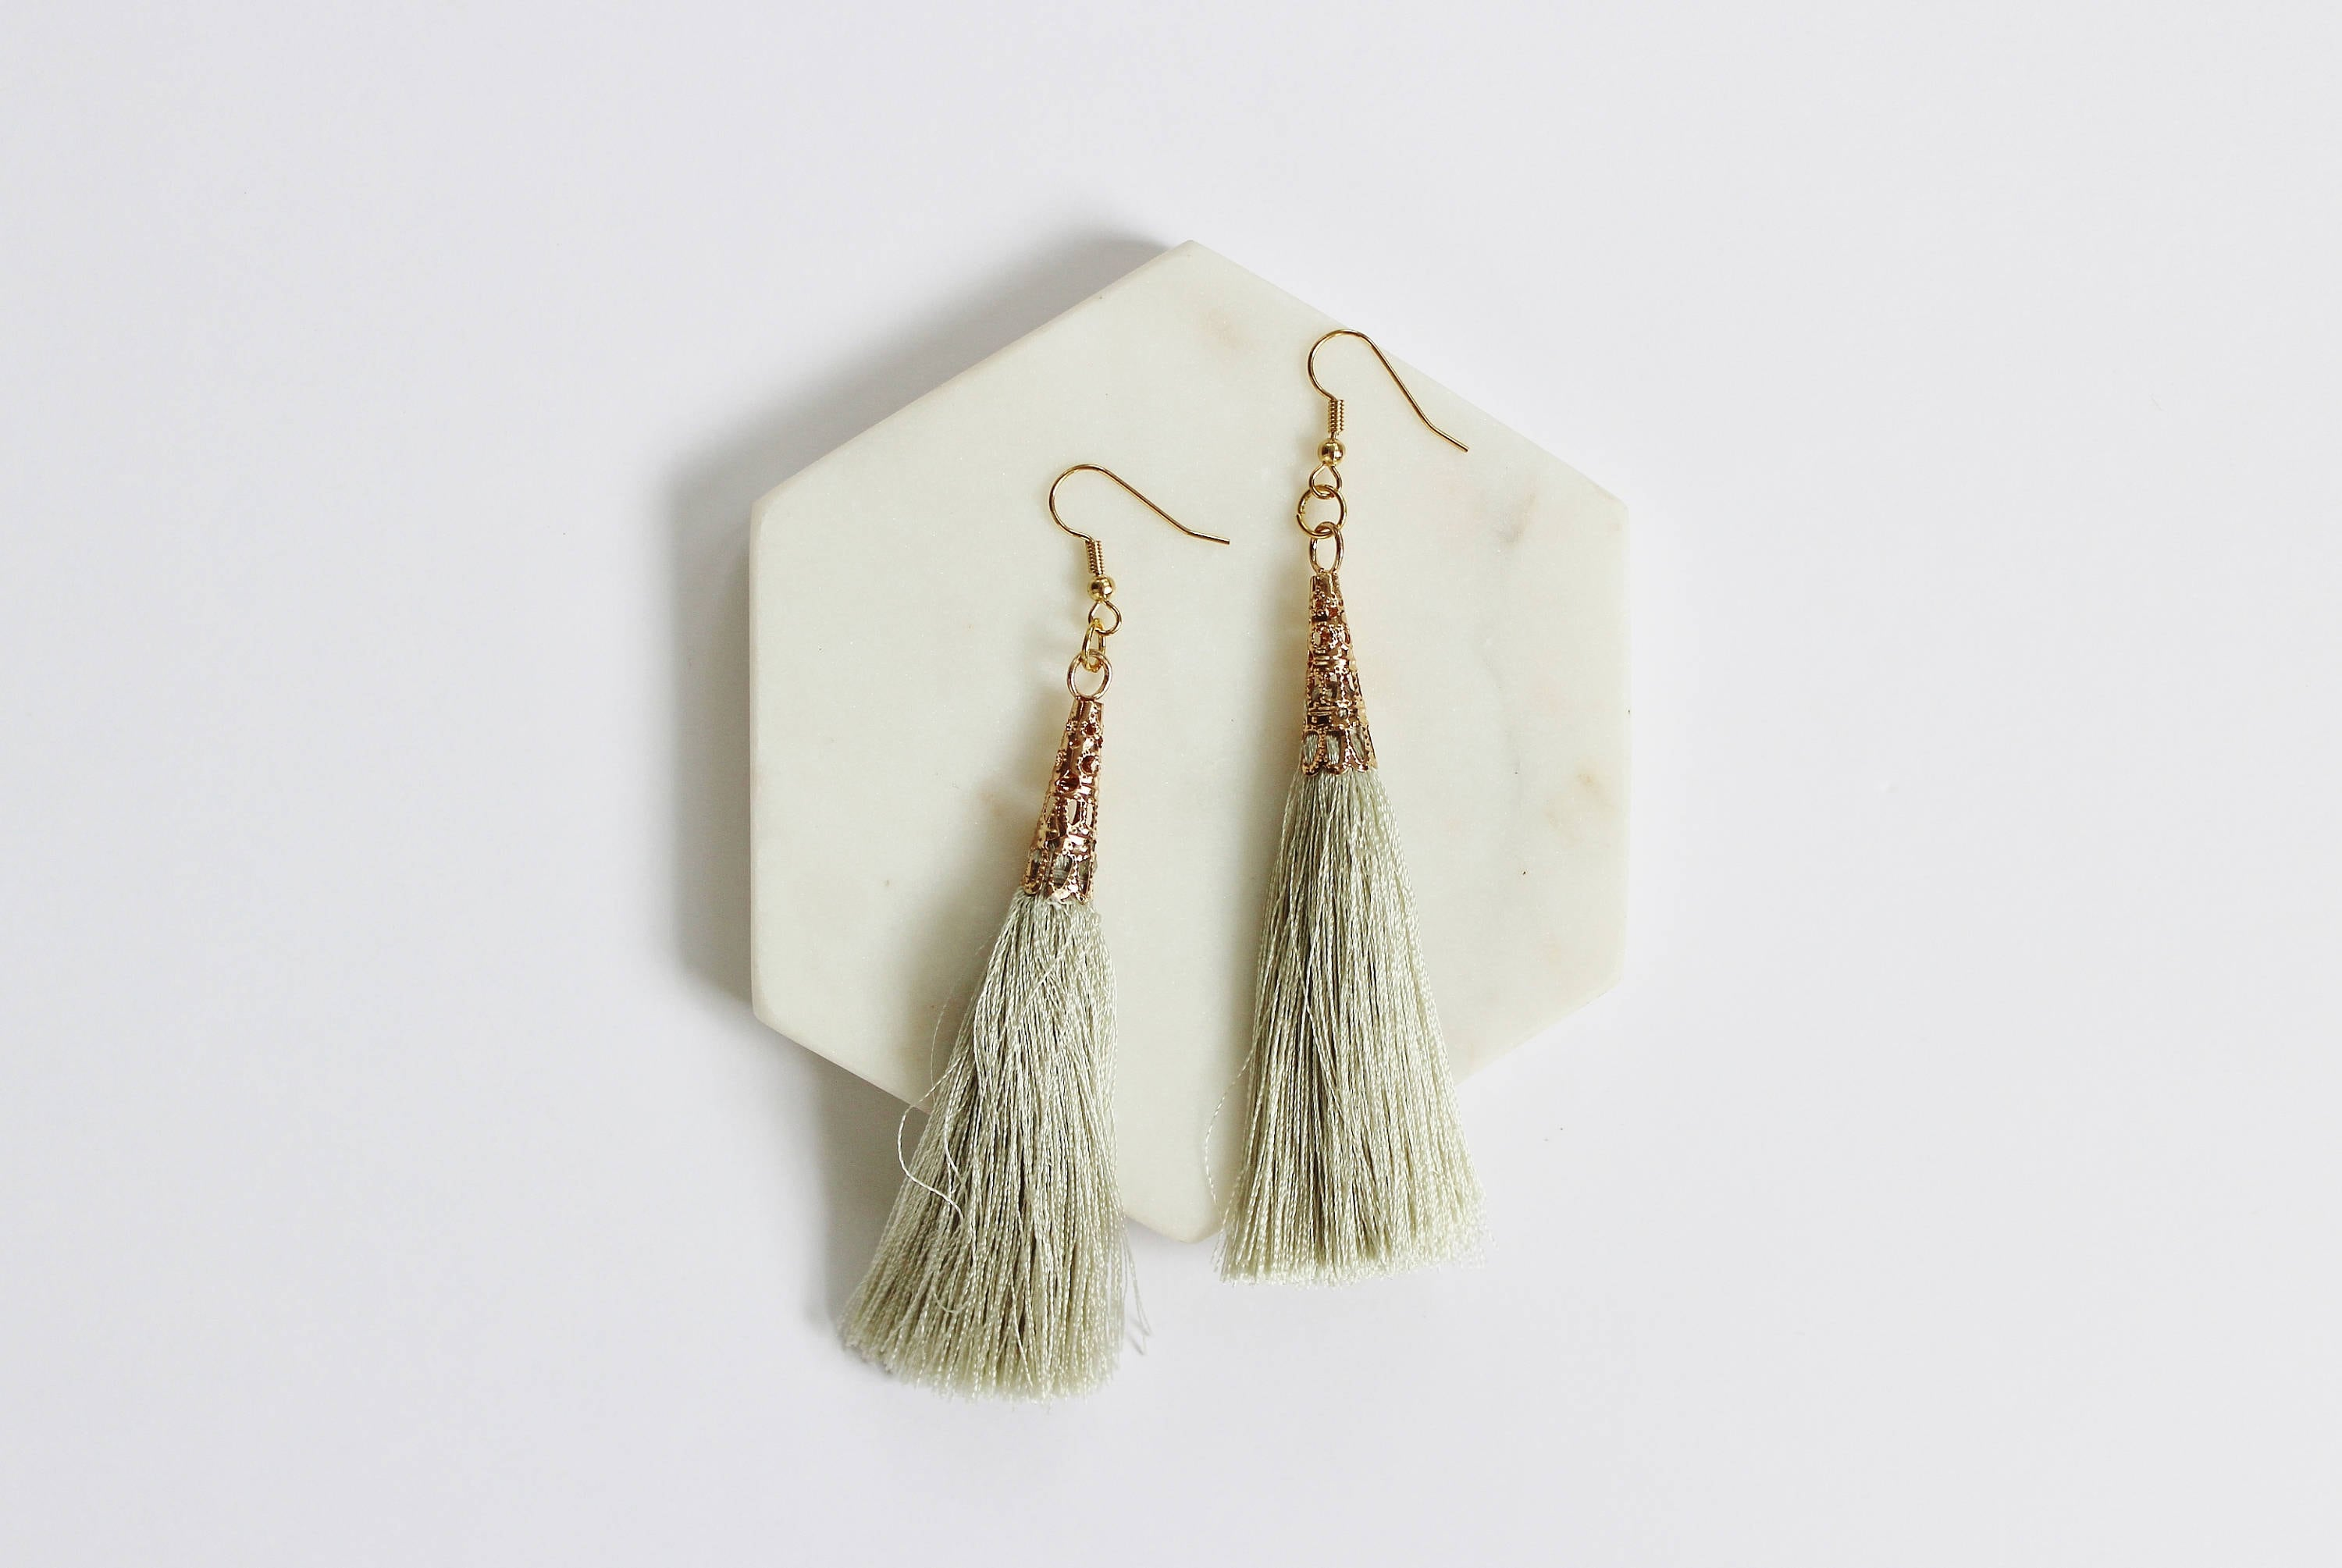 rock leather products ice girls natural fire fringe earrings image